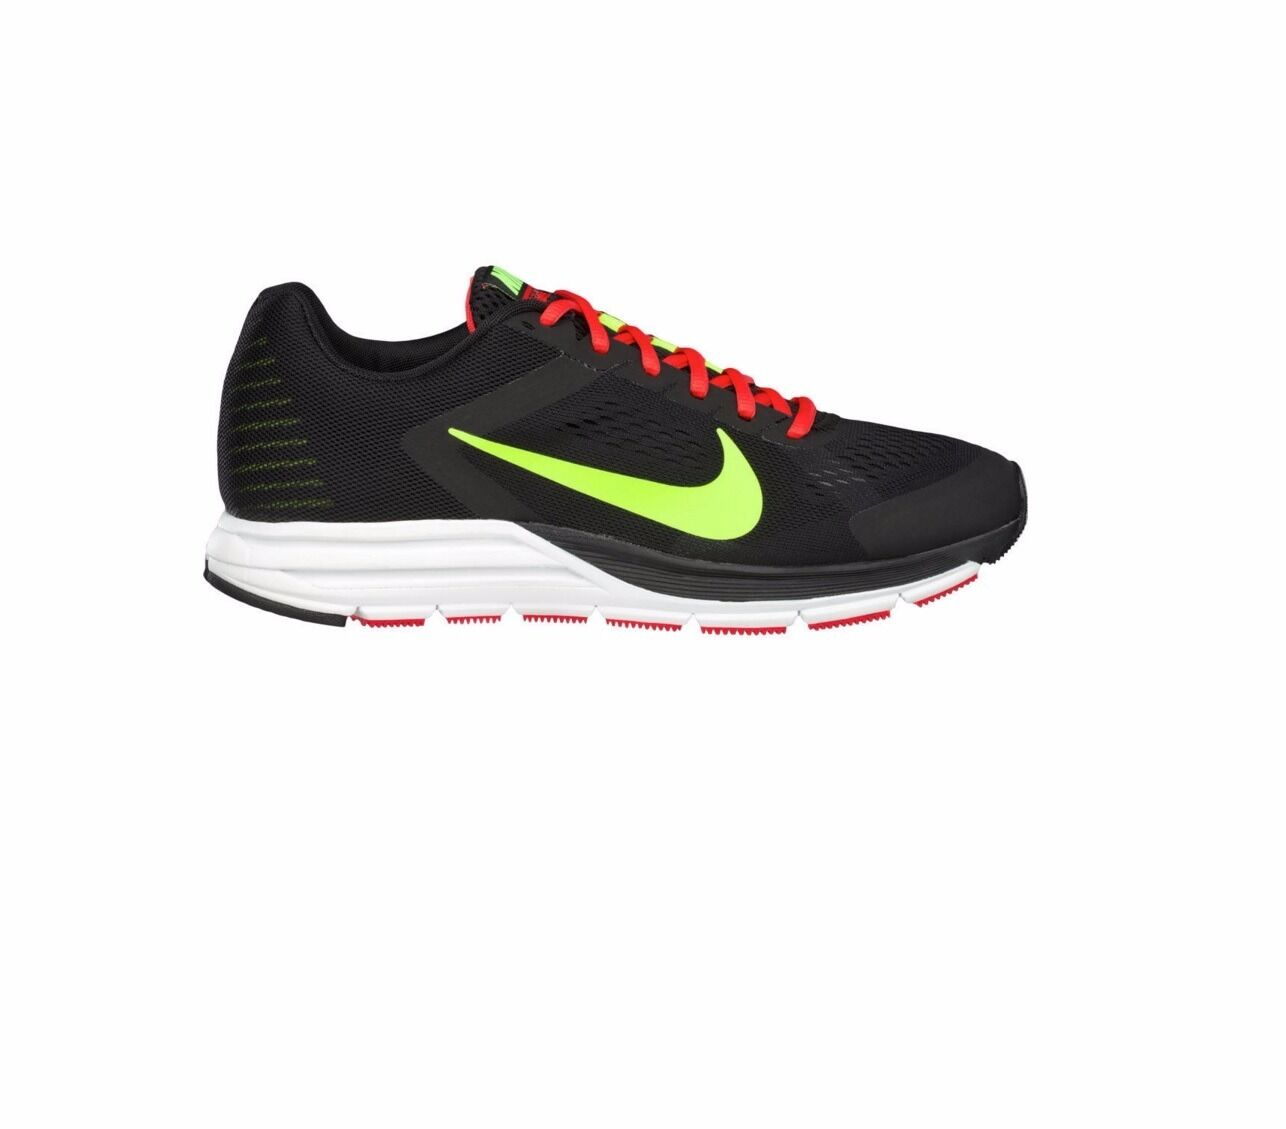 NIKE ZOOM STRUCTURE + 17 UK SIZE SIZE SIZE 7 - 10 NEW RUNNING TRAINERS Schuhe BLACK RARE d90c34